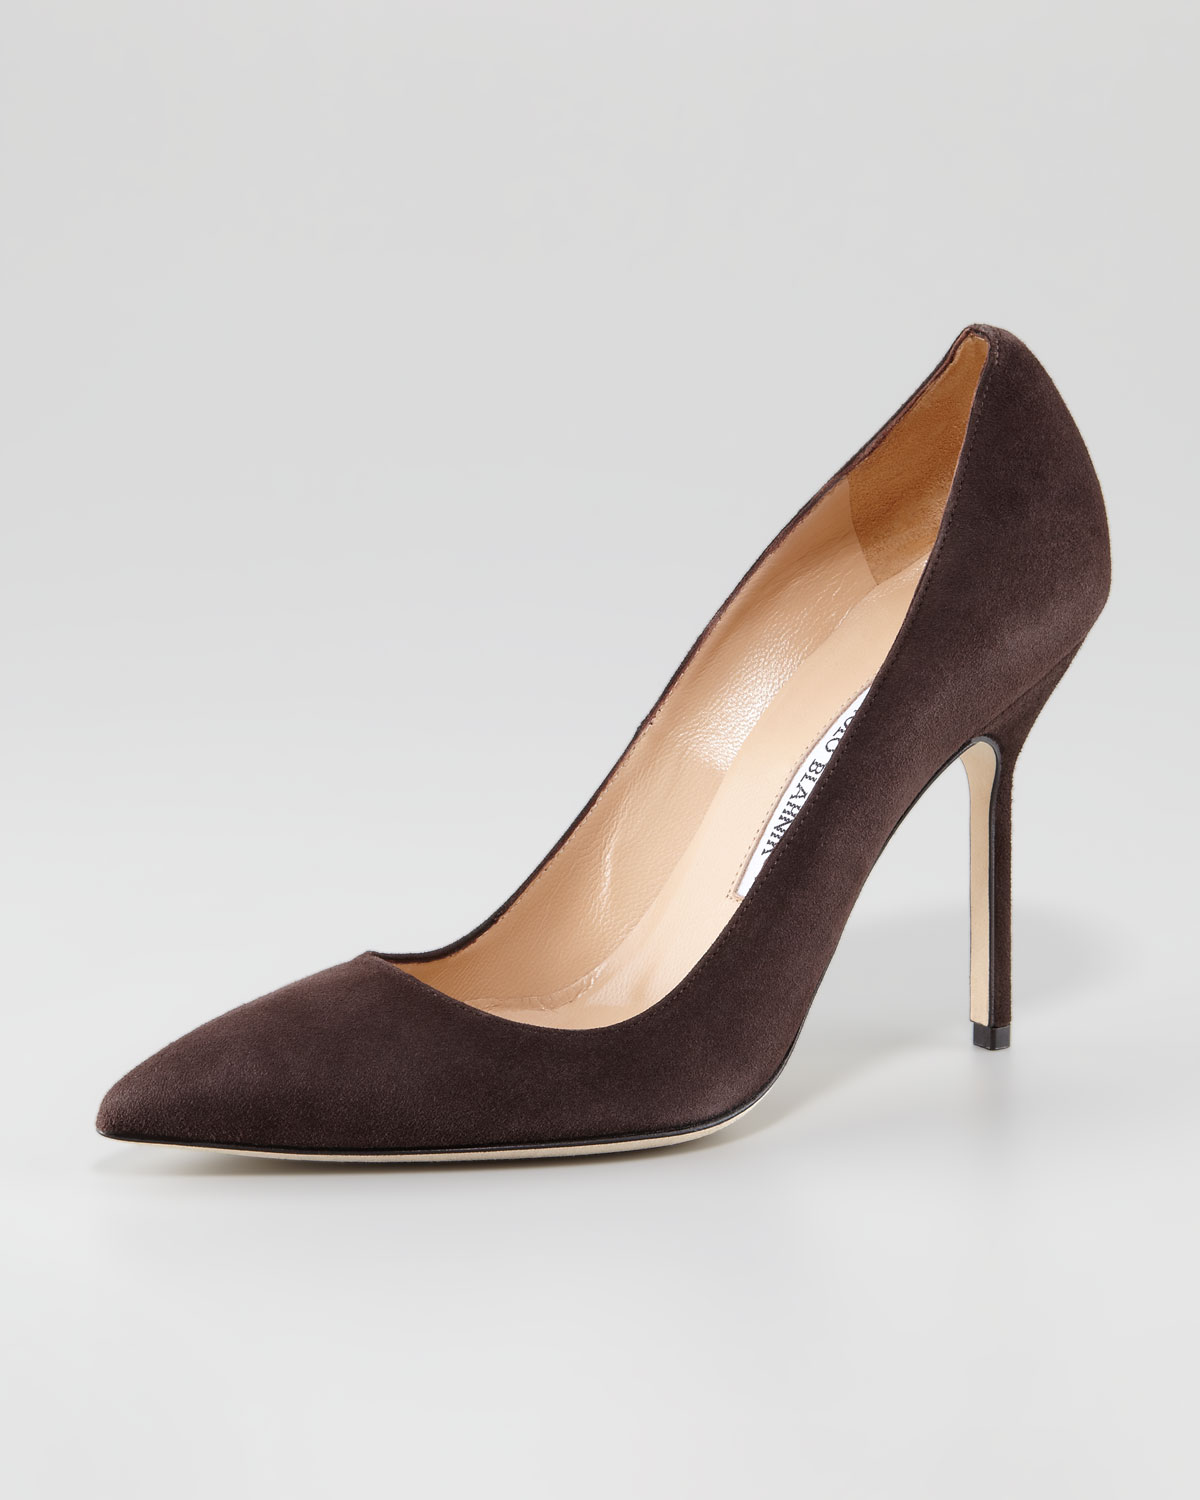 Home Women Pumps & Heels Round Toe Heels Women's Round Toe Pumps and Heels With a large selection of round toe pumps and heels for women, you'll find the perfect pair of shoes .